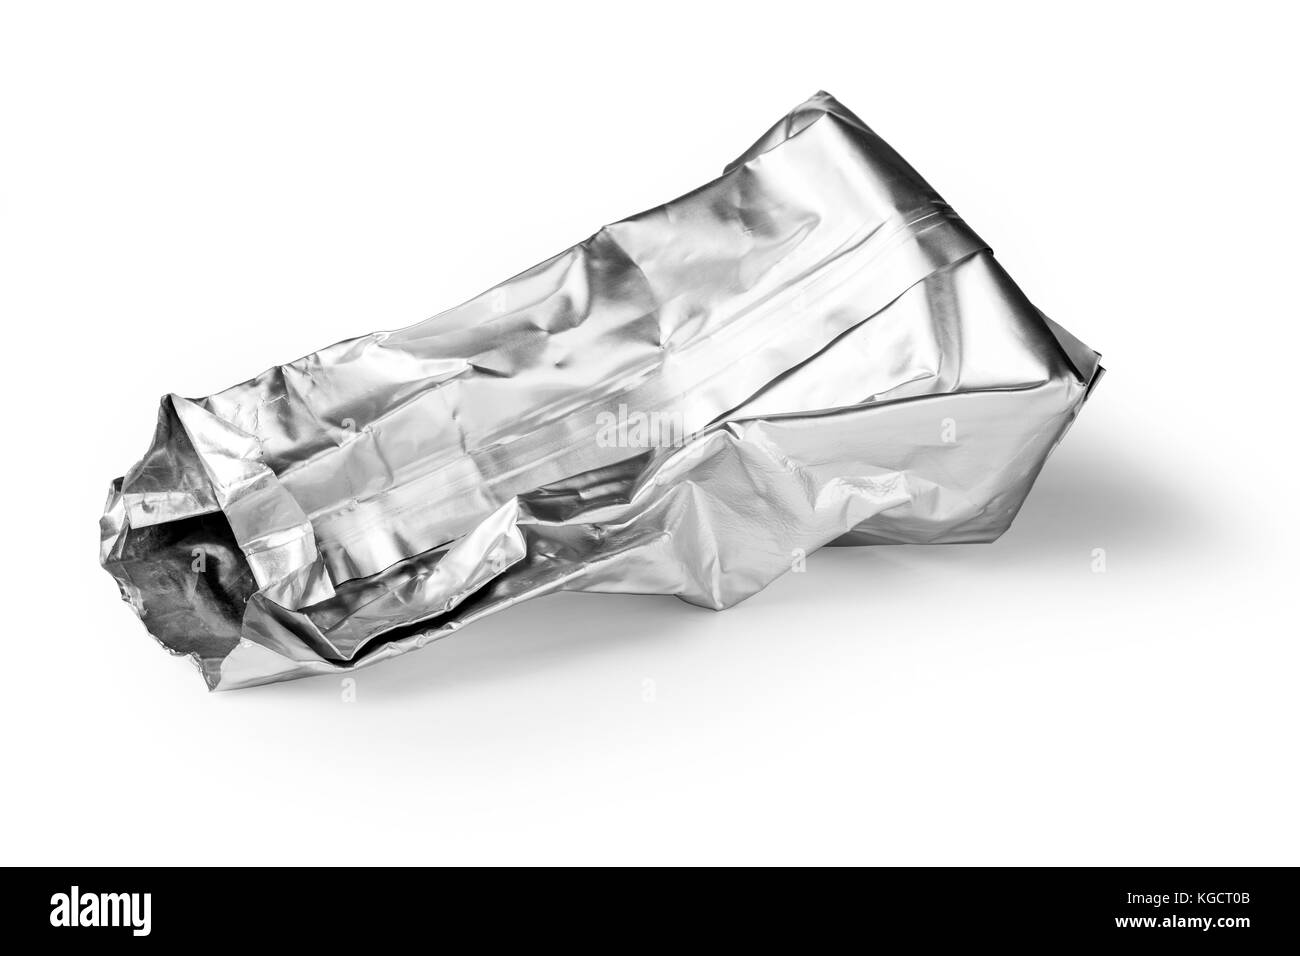 crumpled packaging isolated on white background with clipping path - Stock Image